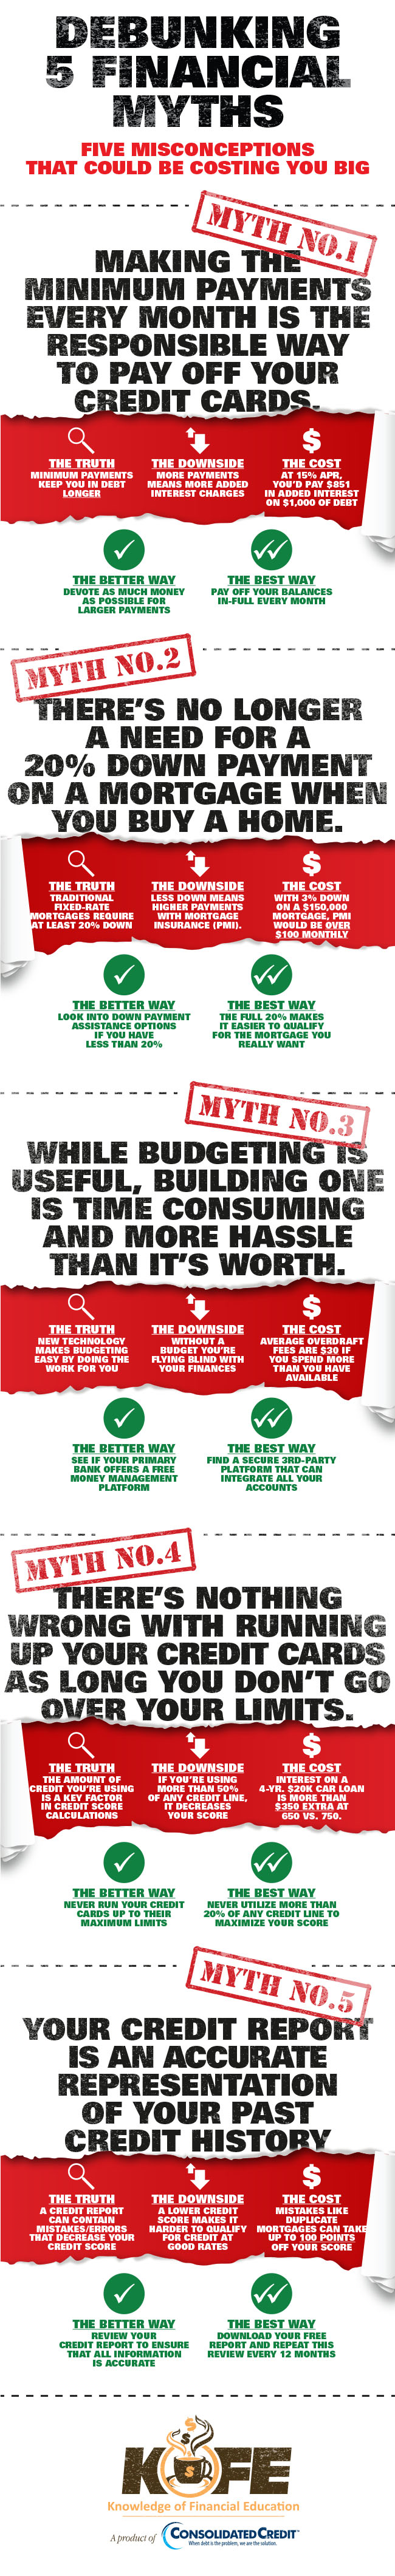 Debunking 5 Financial Myths infographic